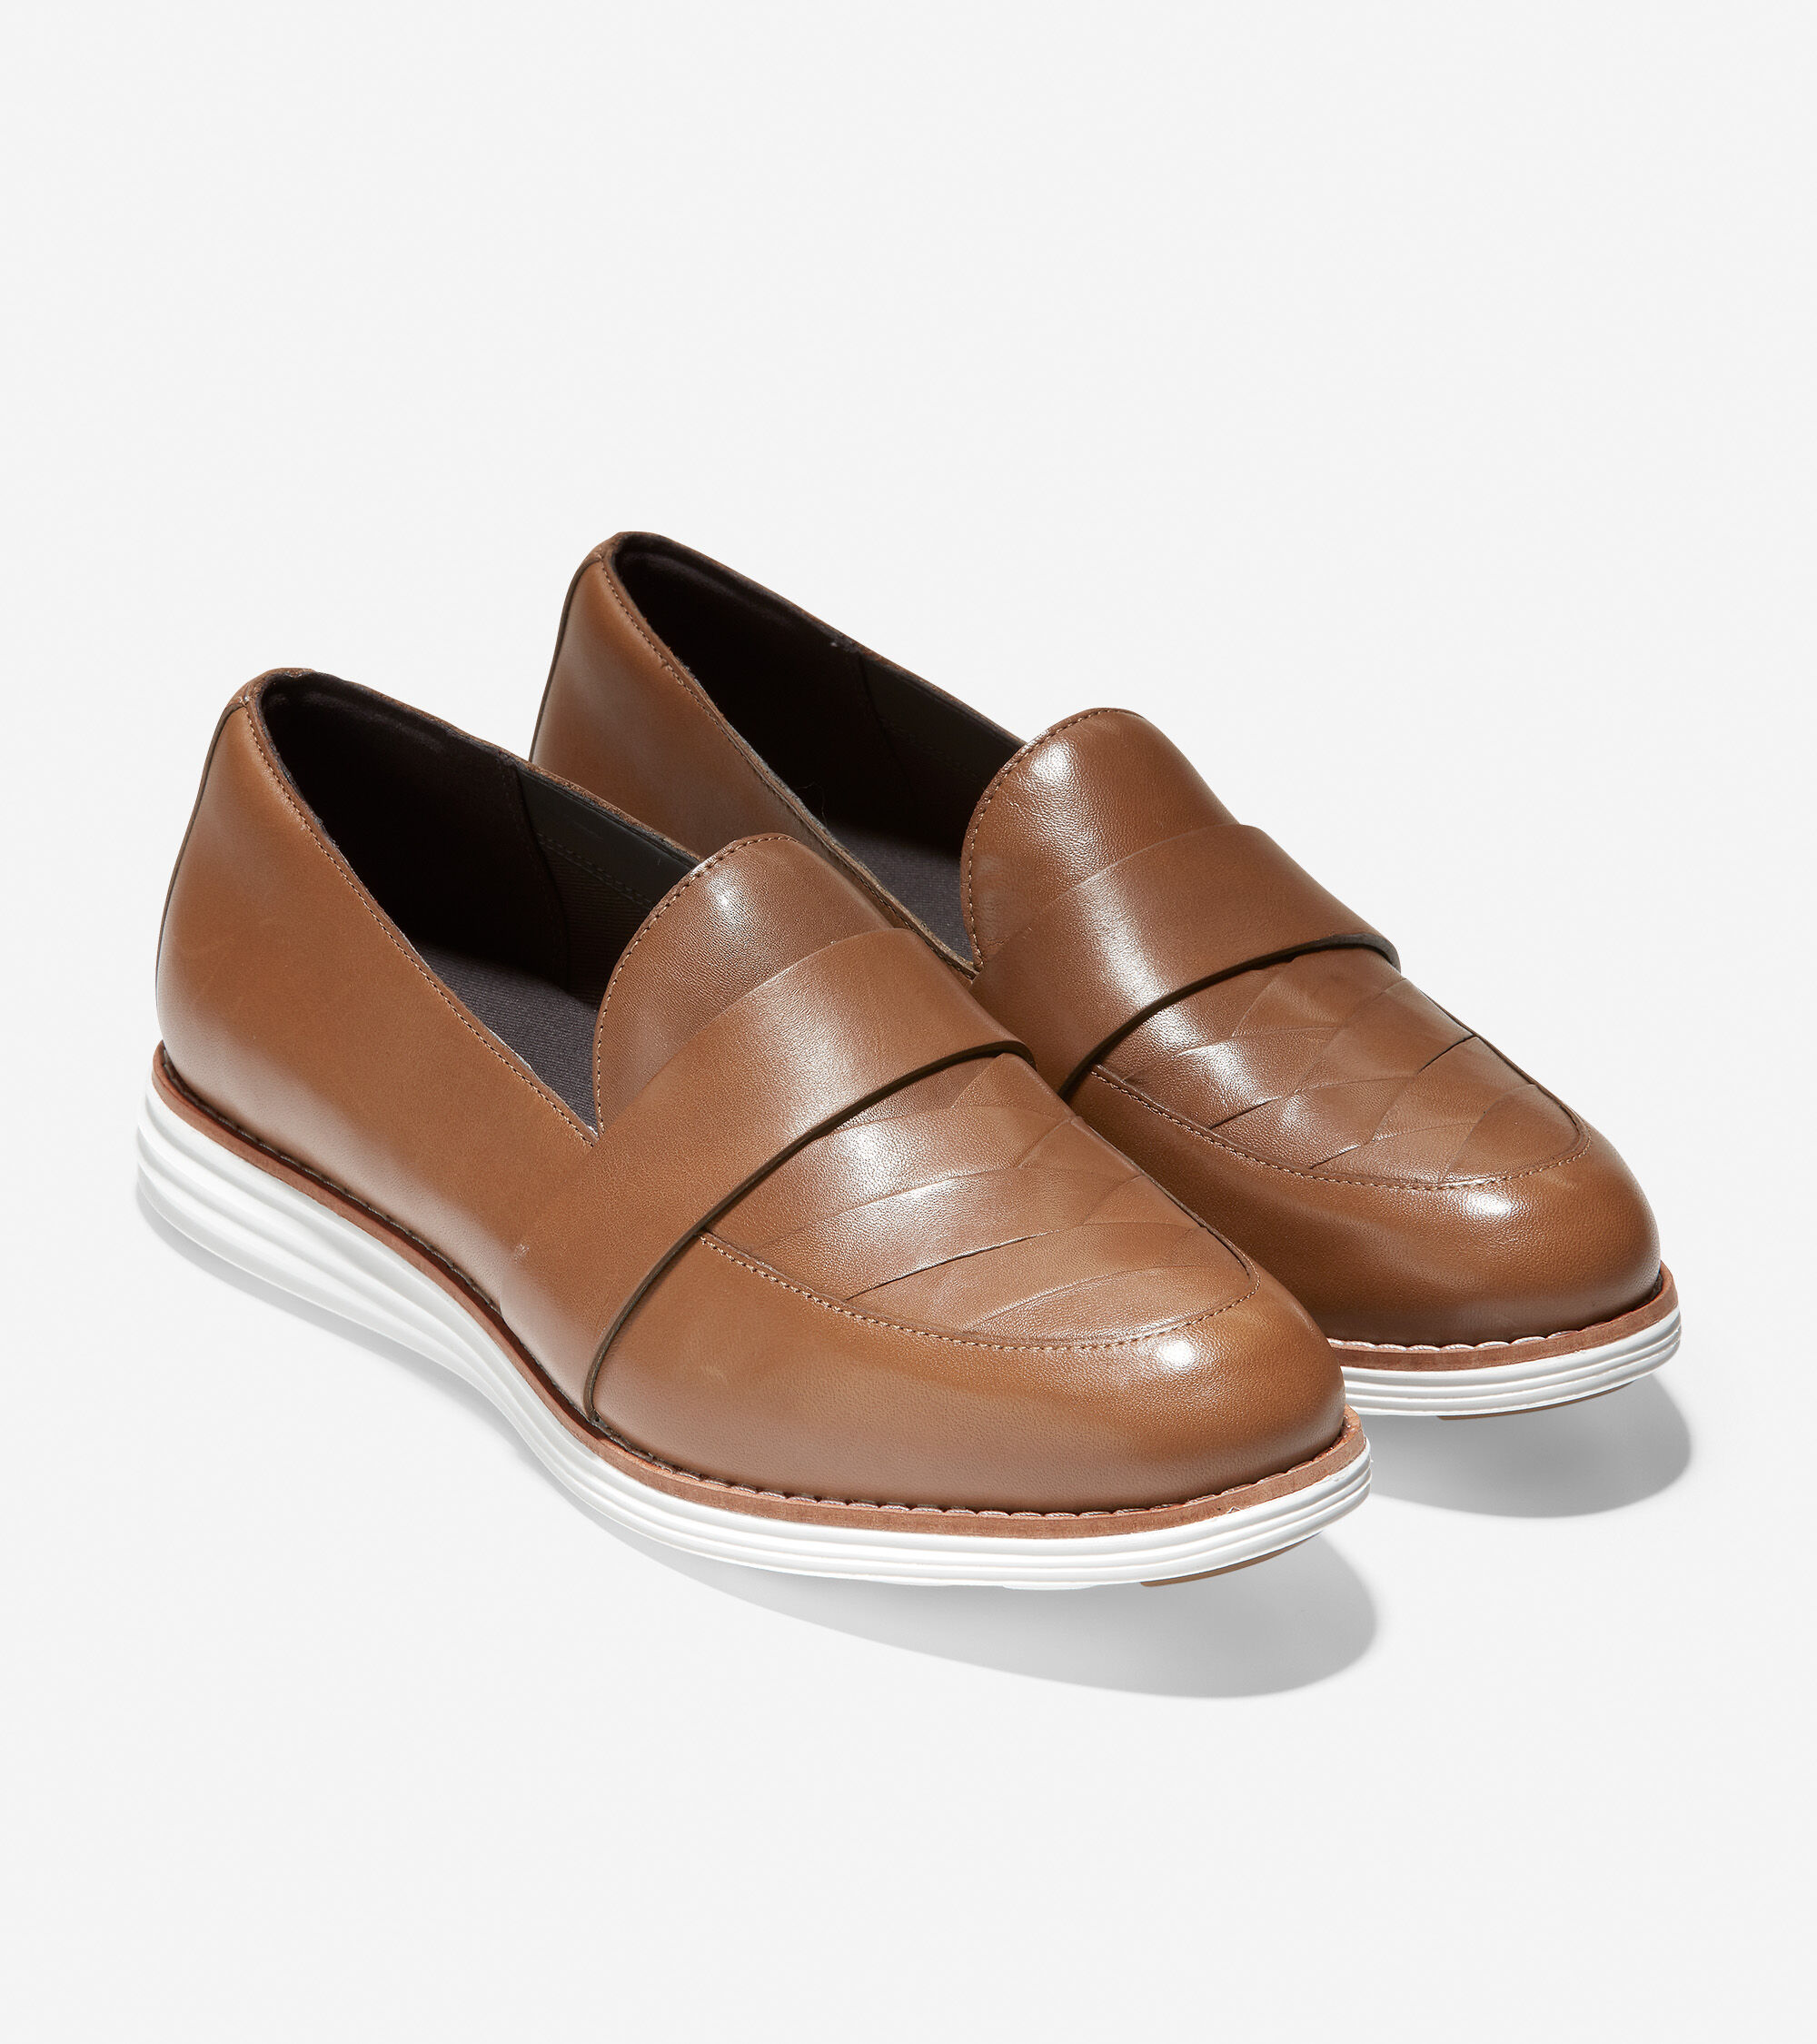 Loafer in Hazelnut Leather   Cole Haan